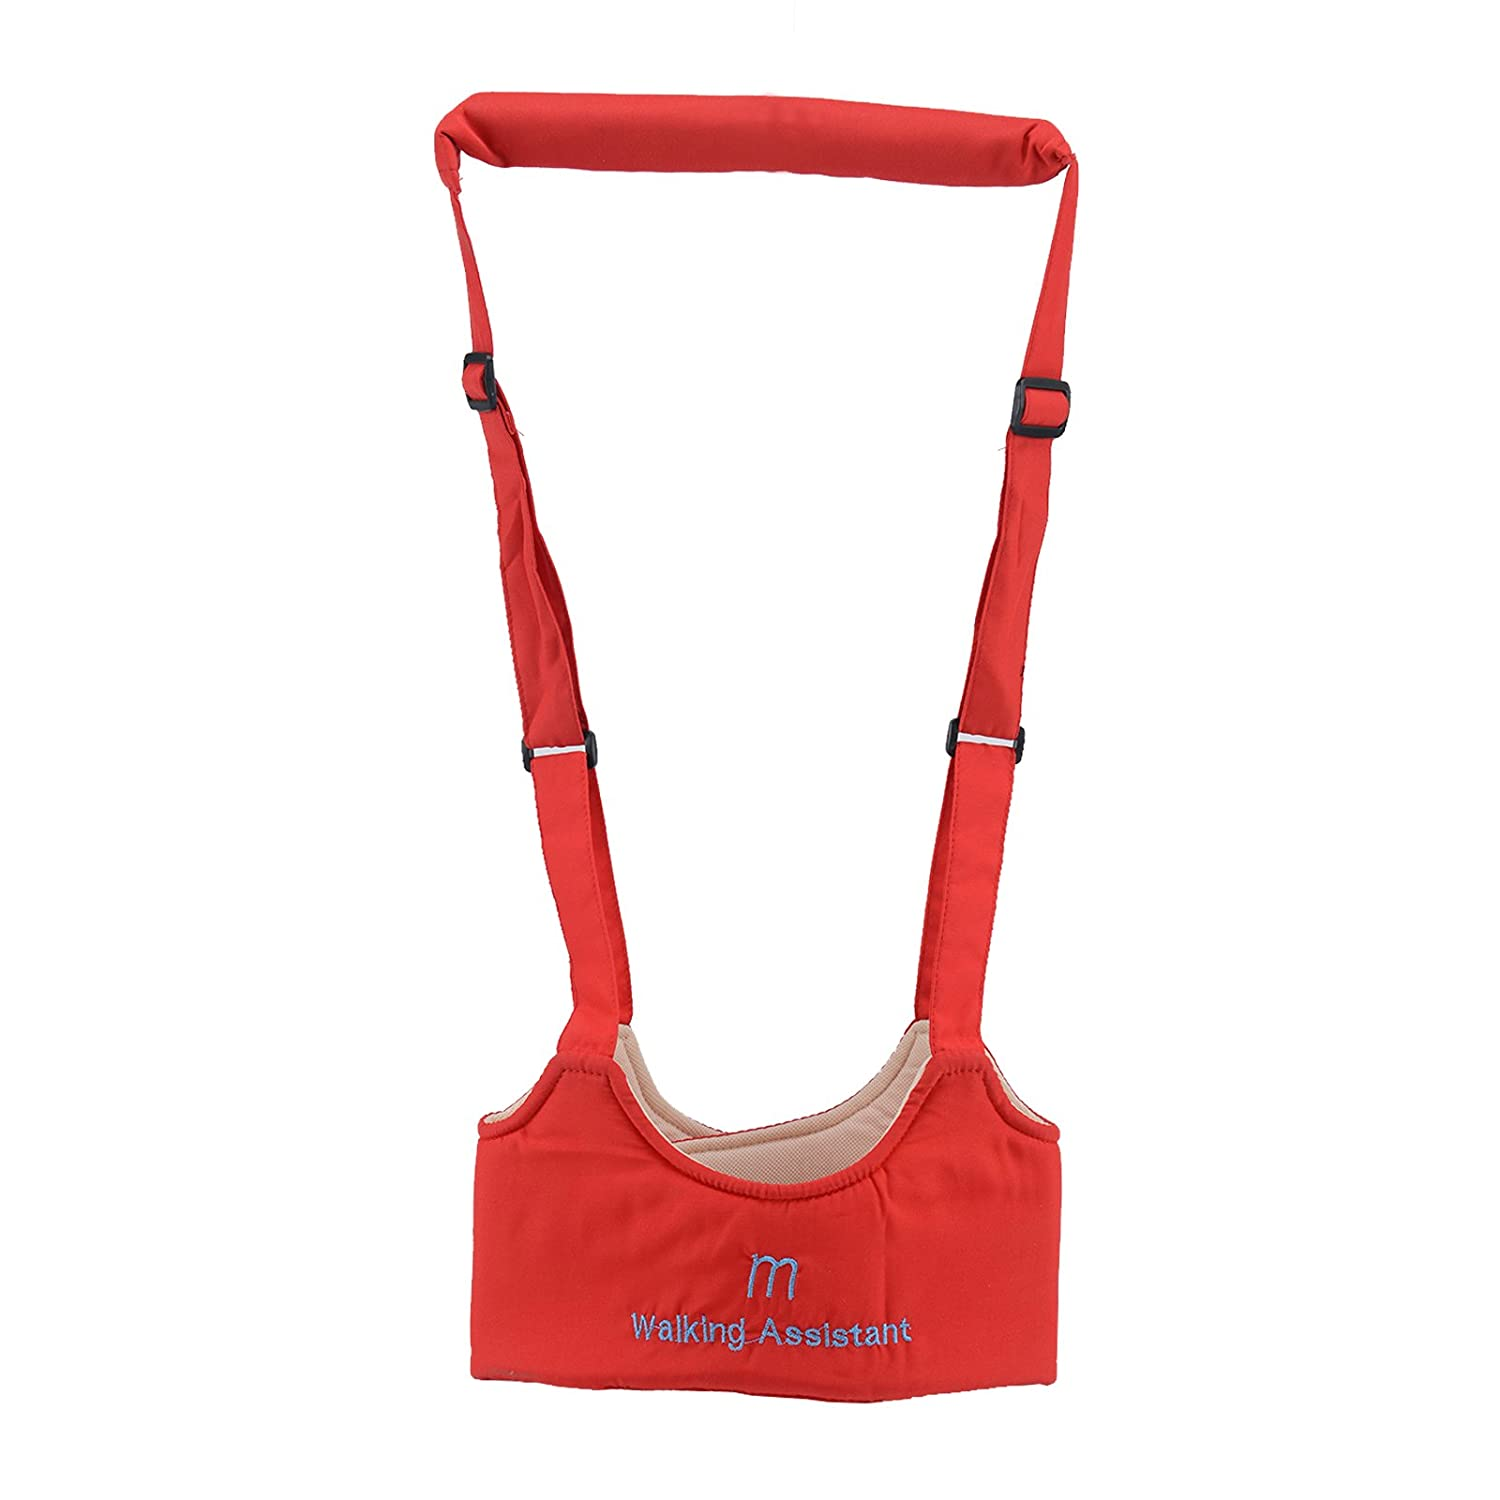 AllRight Baby Toddler Walking Assistant Learning Walk Safety Reins Harness for 6 Months to 14 Months Blue oem